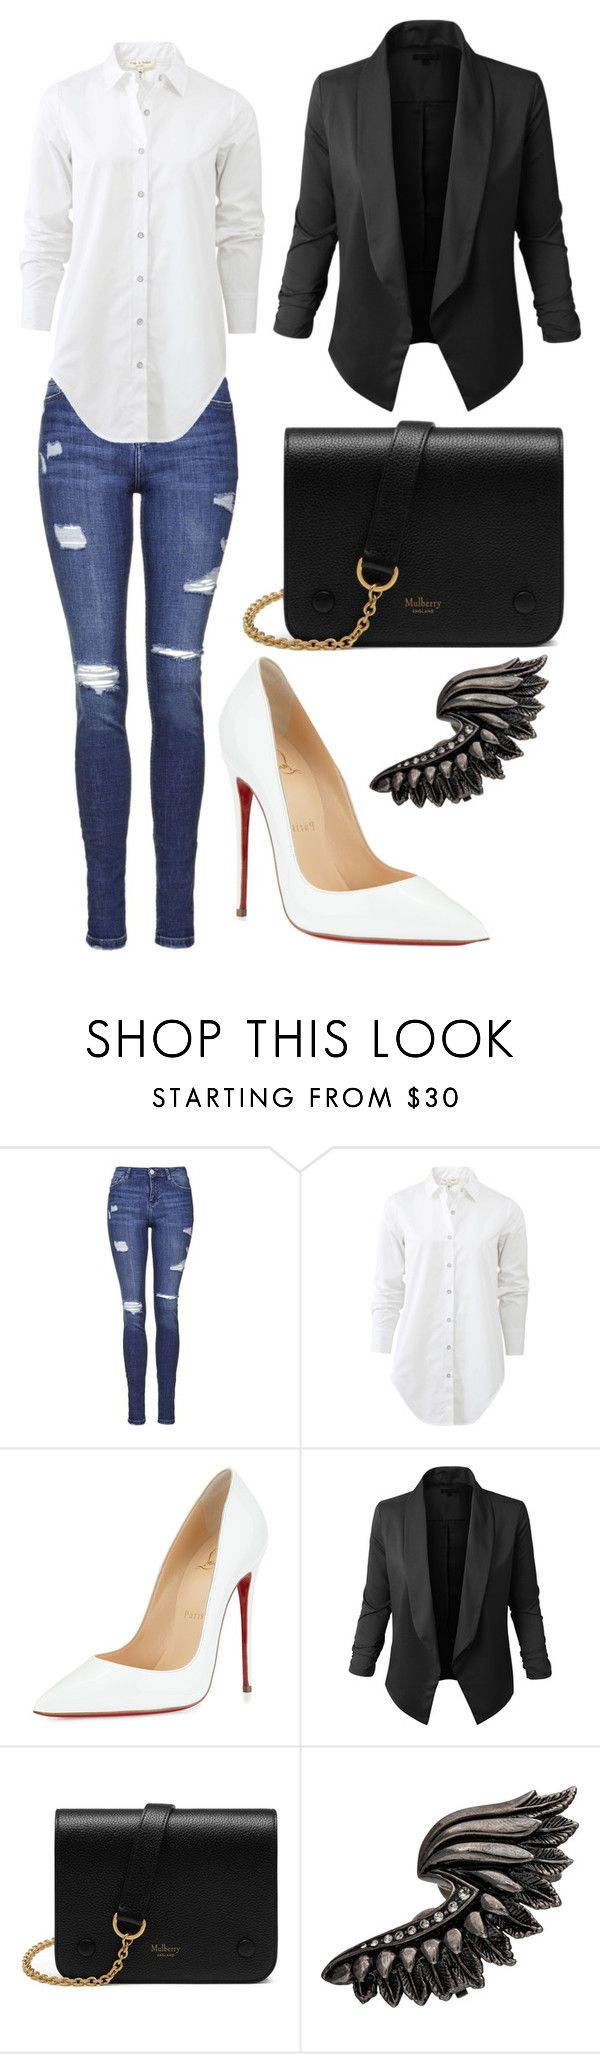 """Jusiieiiwiw"" by kidrauhlss ❤ liked on Polyvore featuring Topshop, rag & bone, Christian Louboutin, LE3NO, Mulberry and Roberto Cavalli"